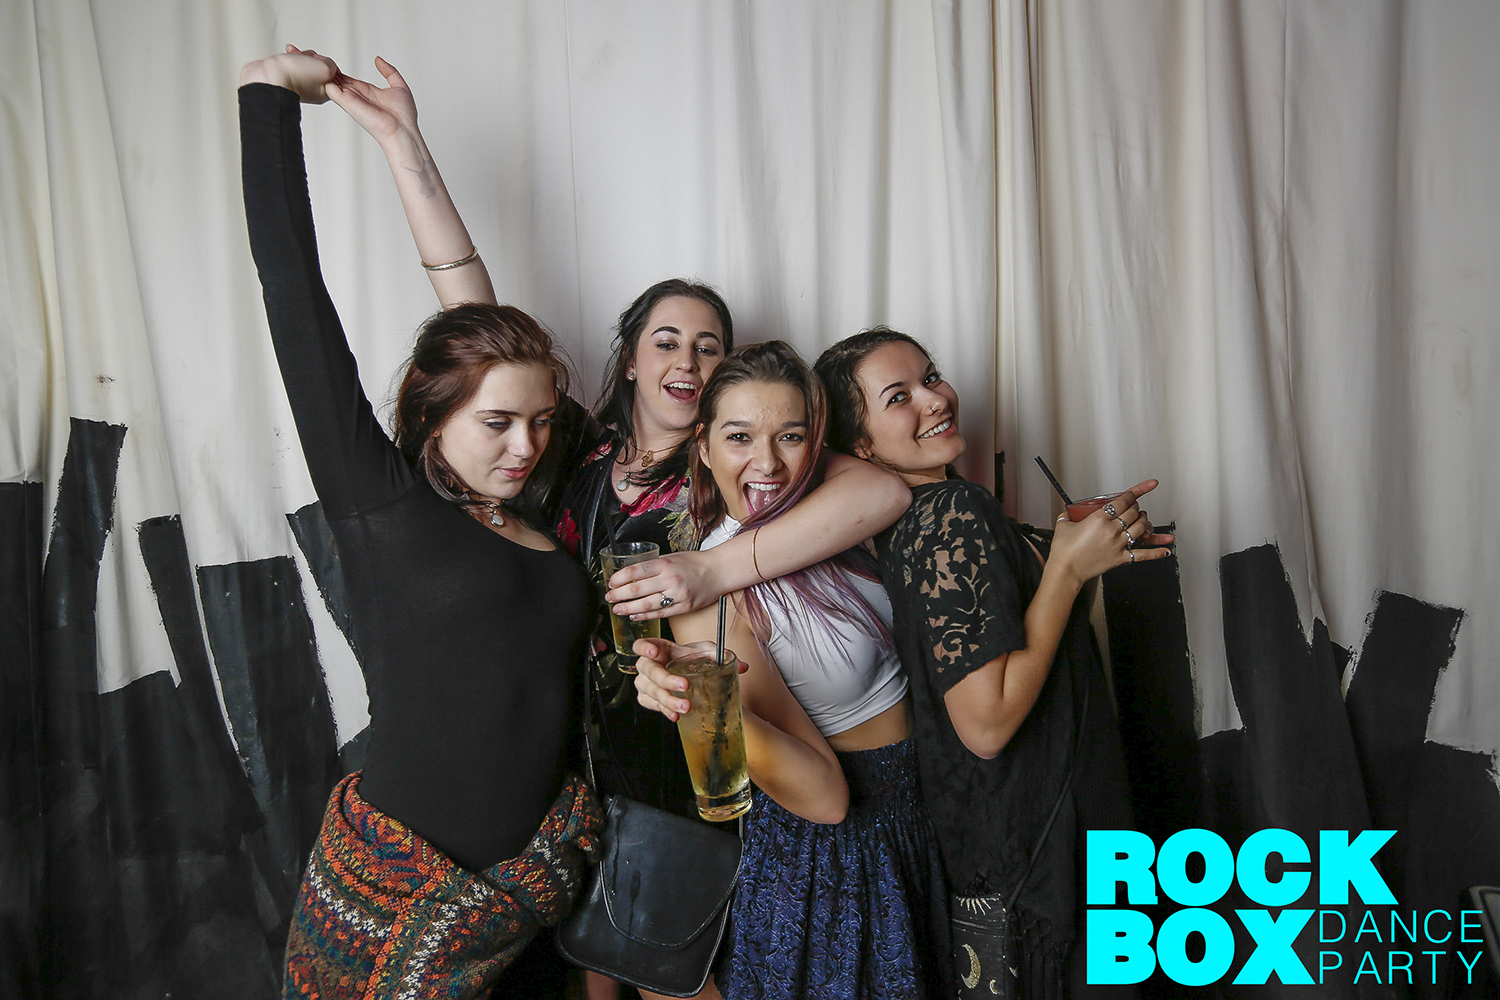 Rock box feb 2015-0085.jpg